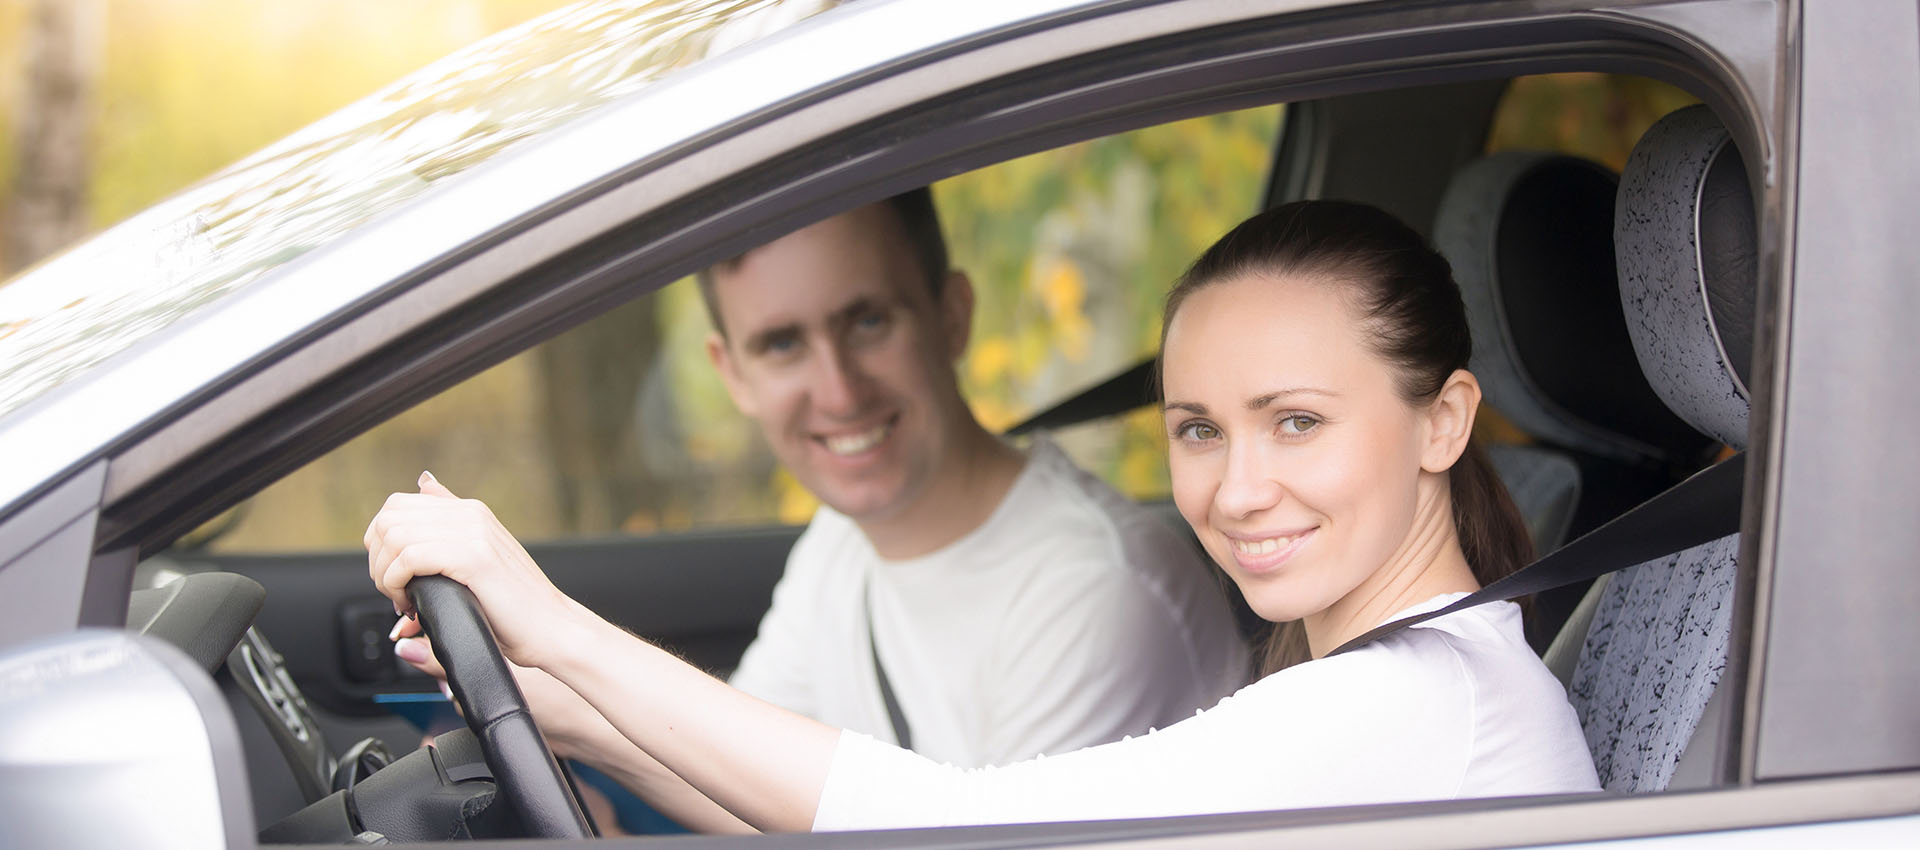 Professional Driving School In Herndon